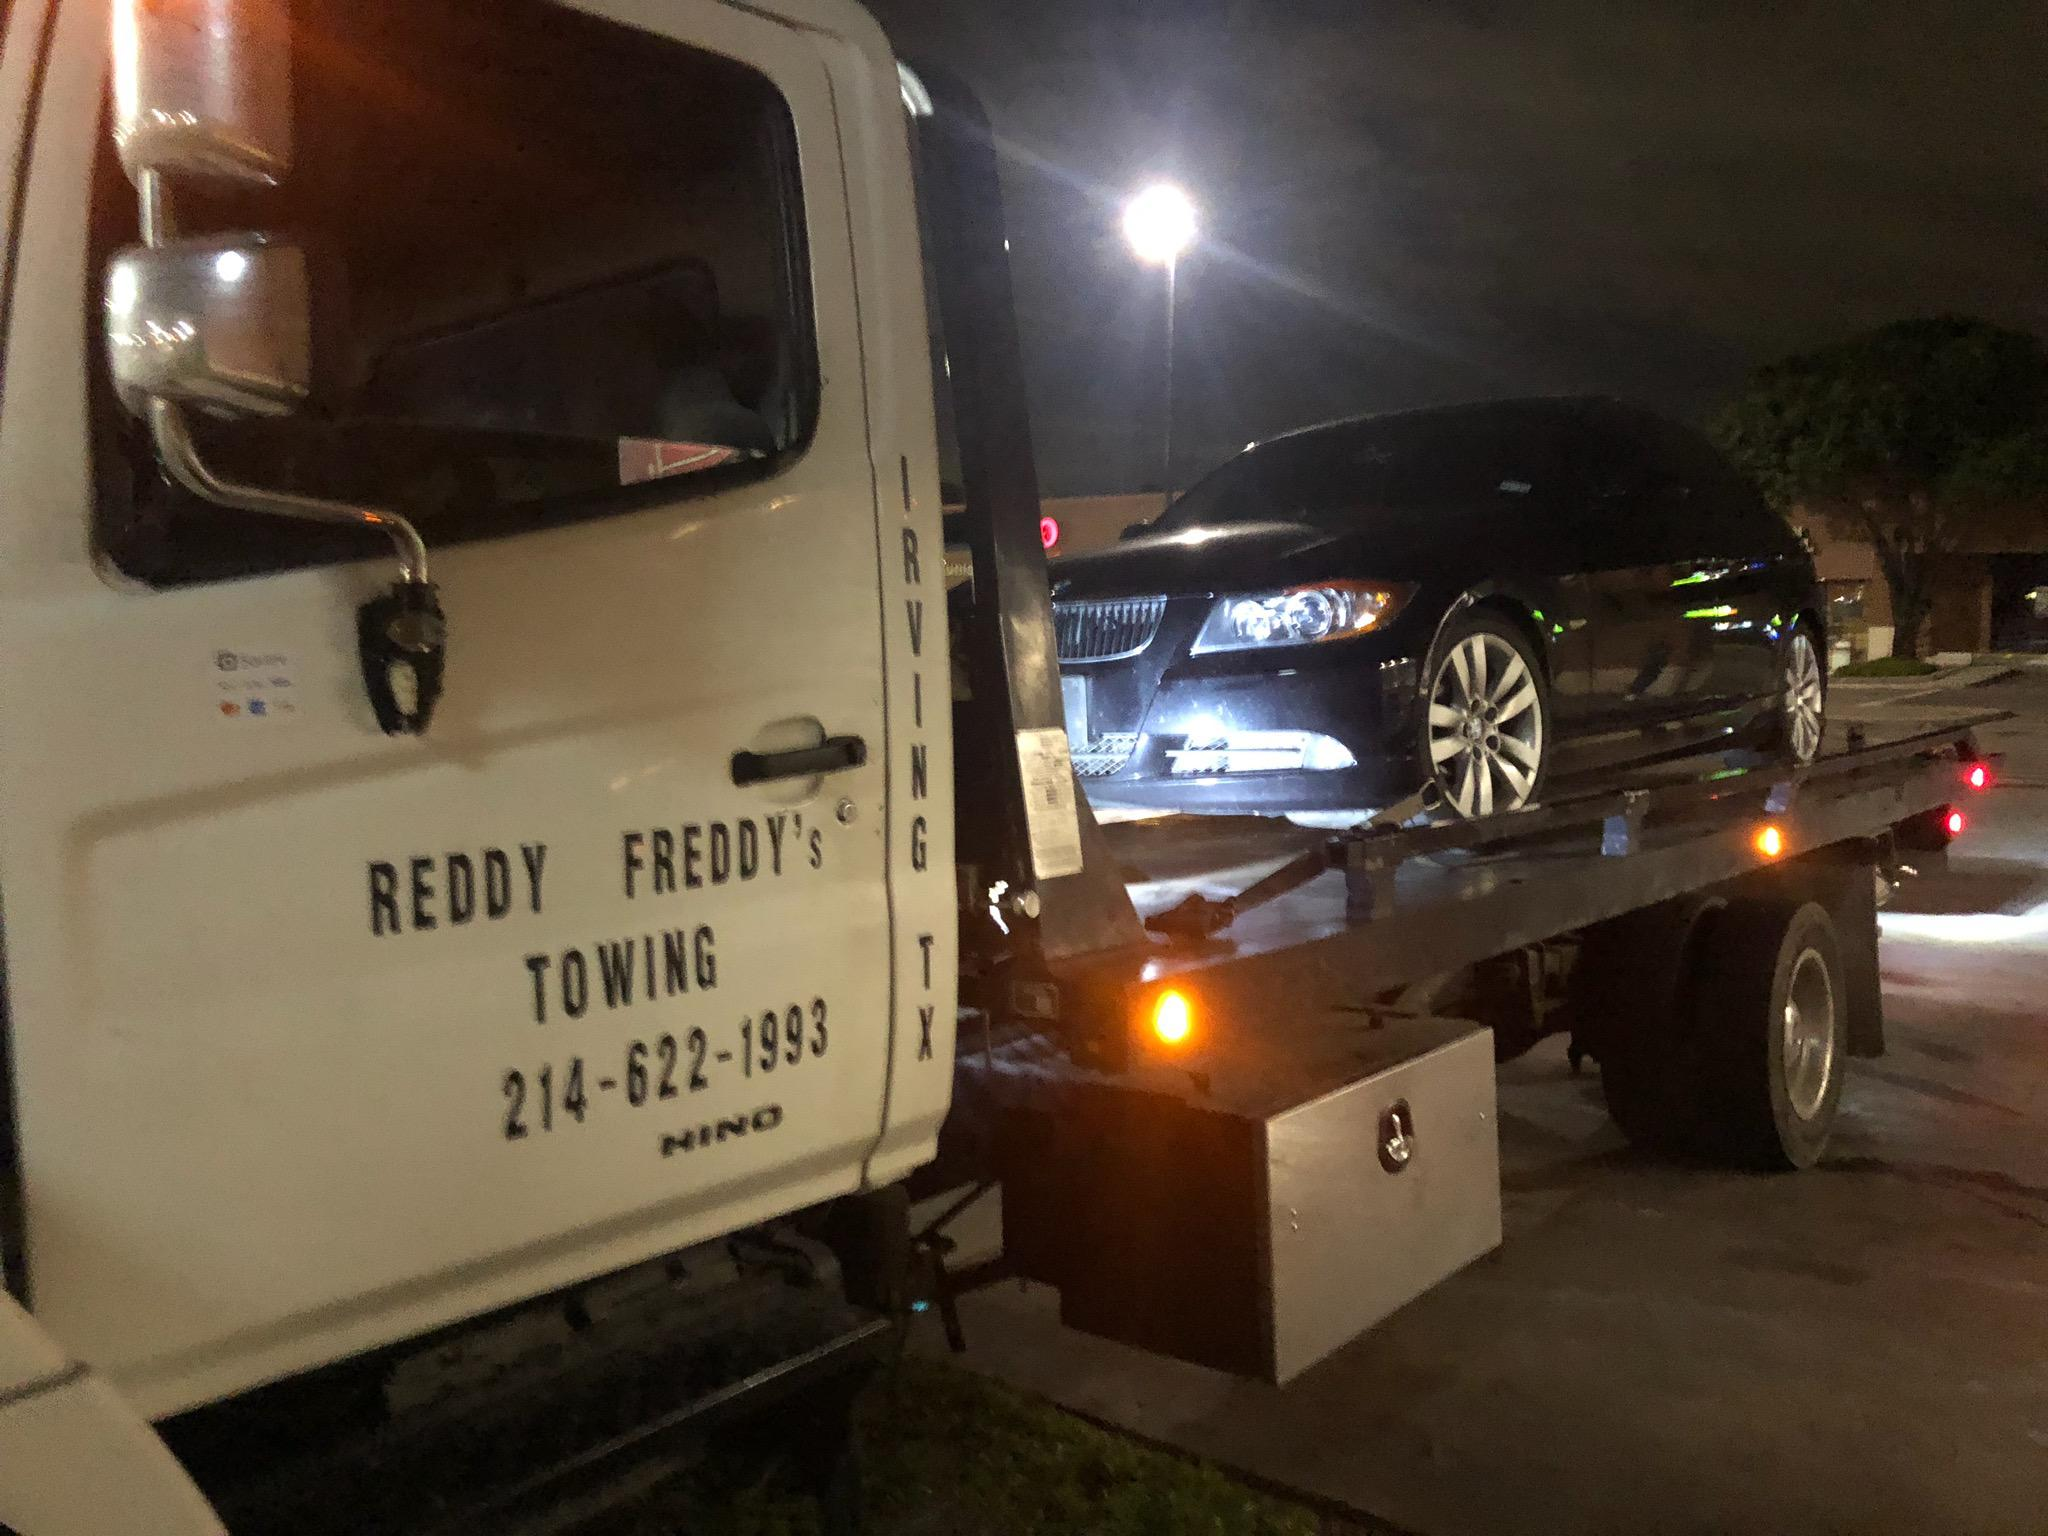 Reddy Freddy's Towing image 11